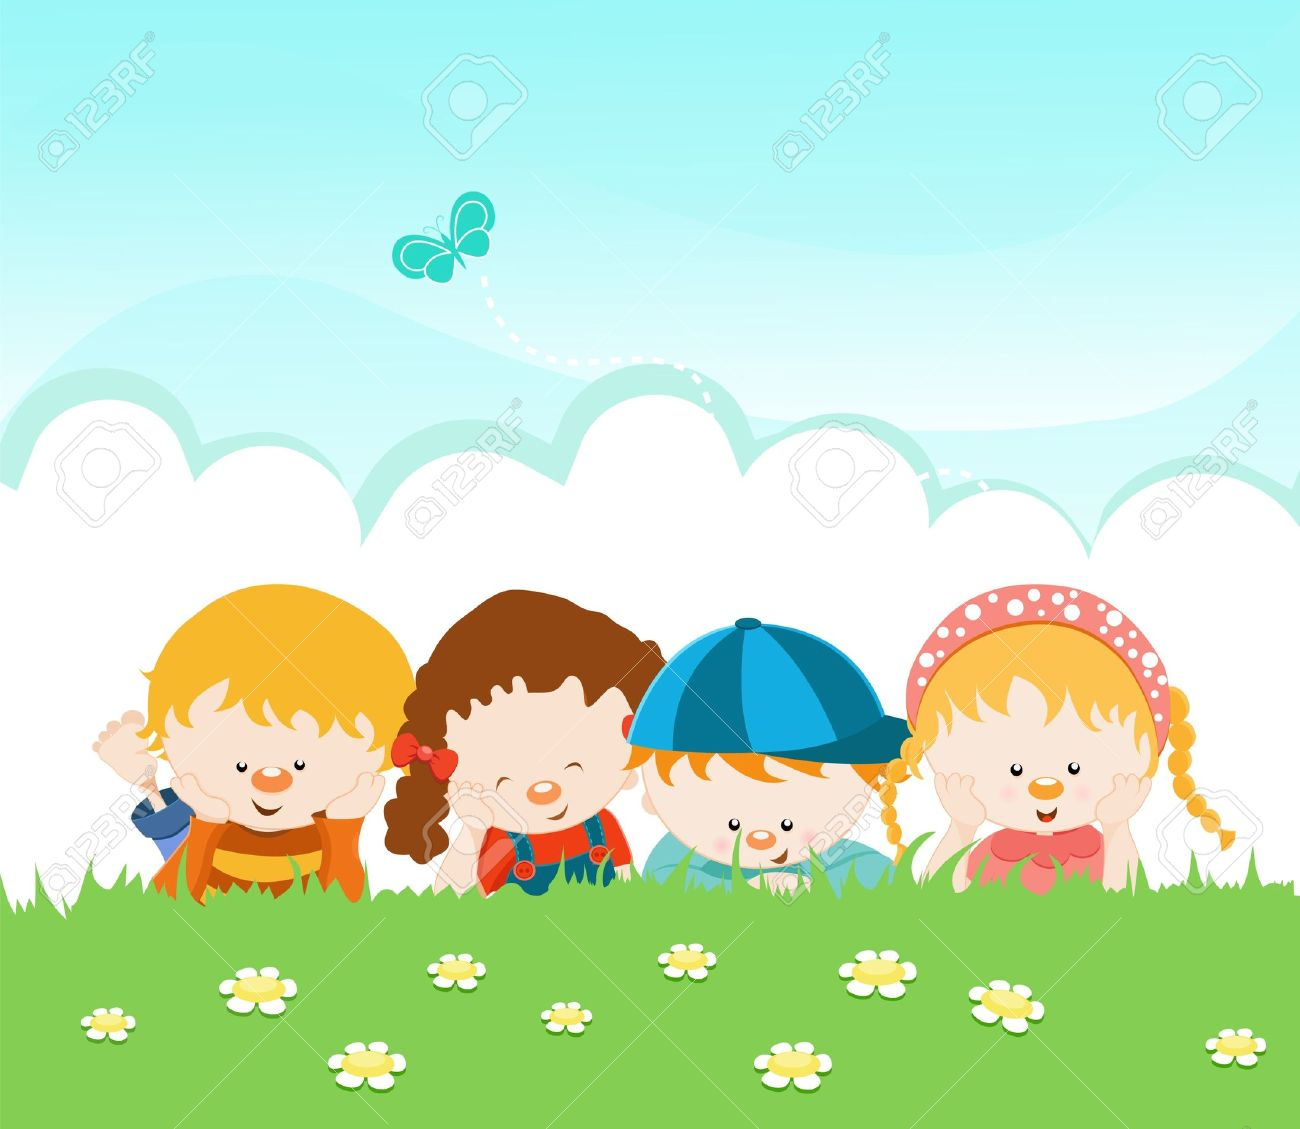 Kids Lying On The Grass Royalty Free Cliparts, Vectors, And Stock.